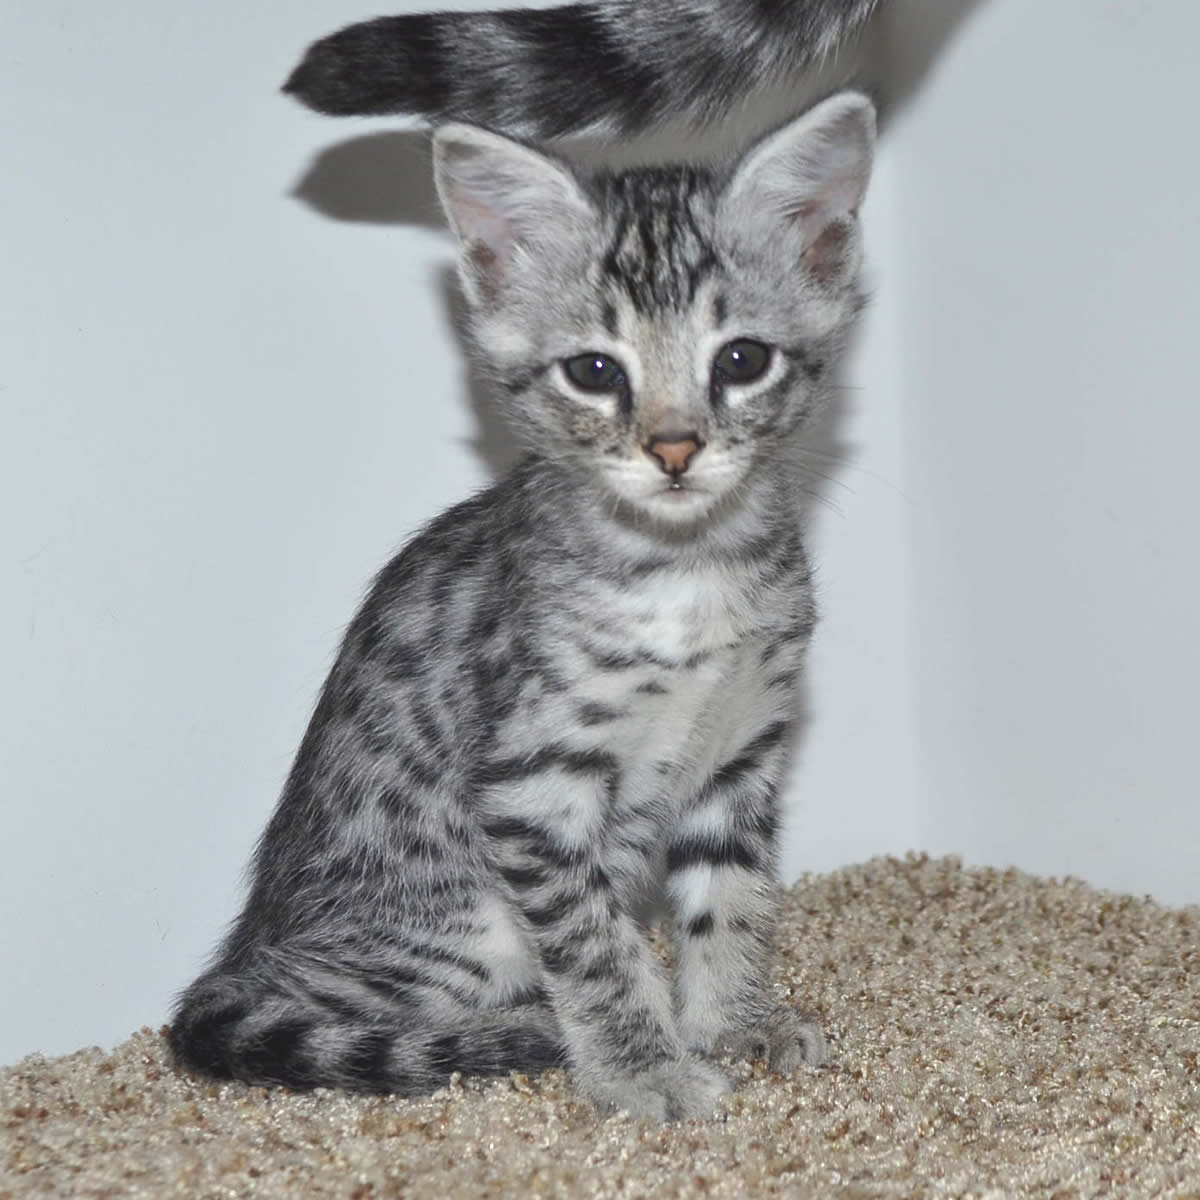 f2-savanna-kittens-tb0901e